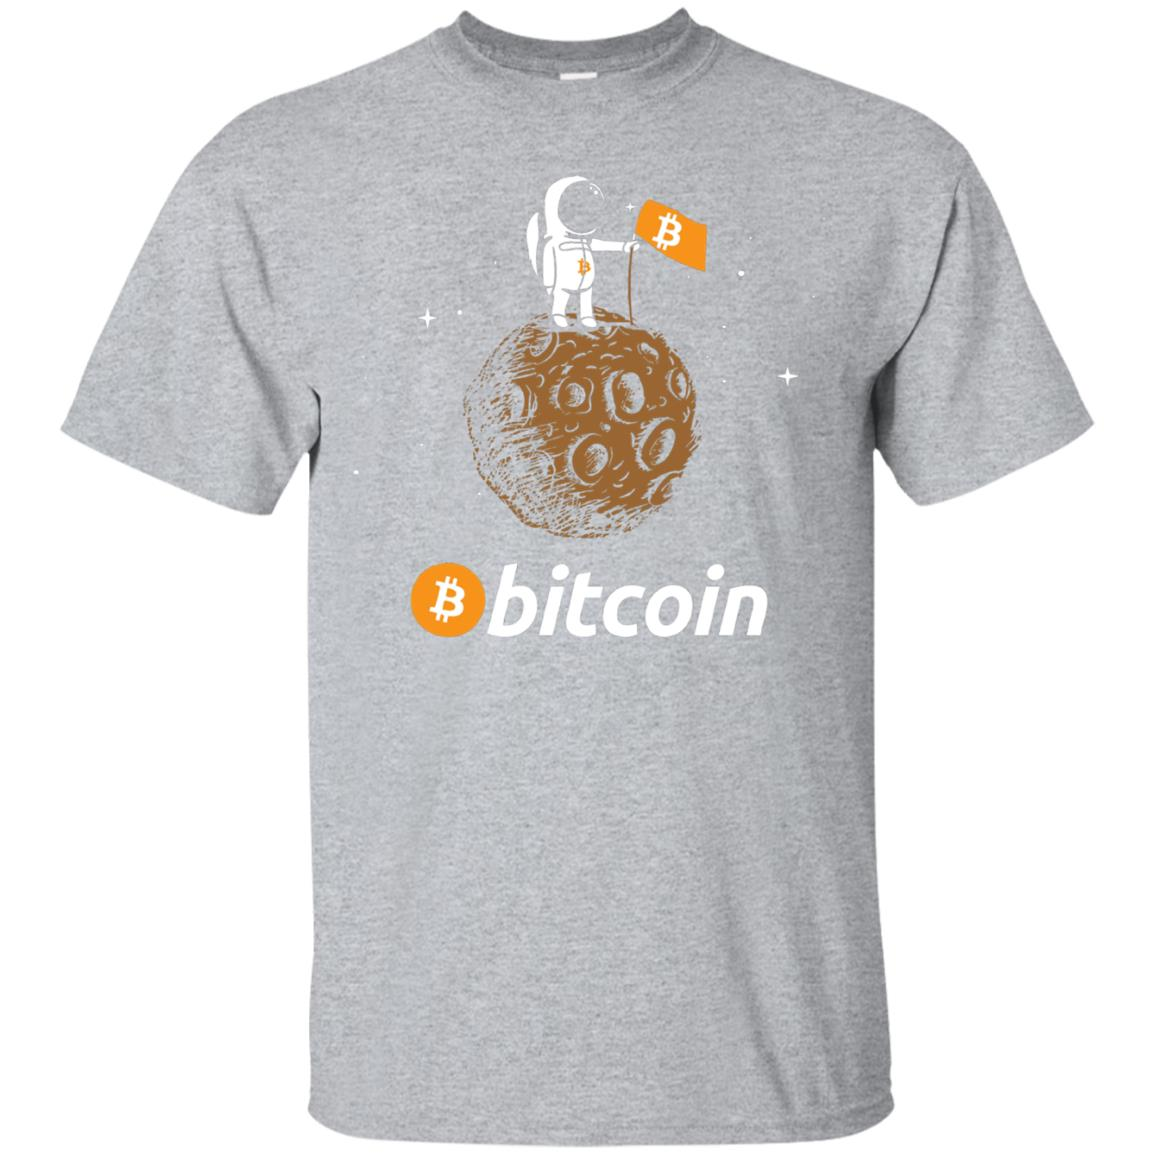 Bitcoin BTC Crypto to the Moon Shirt Featuring Astronaut 99promocode